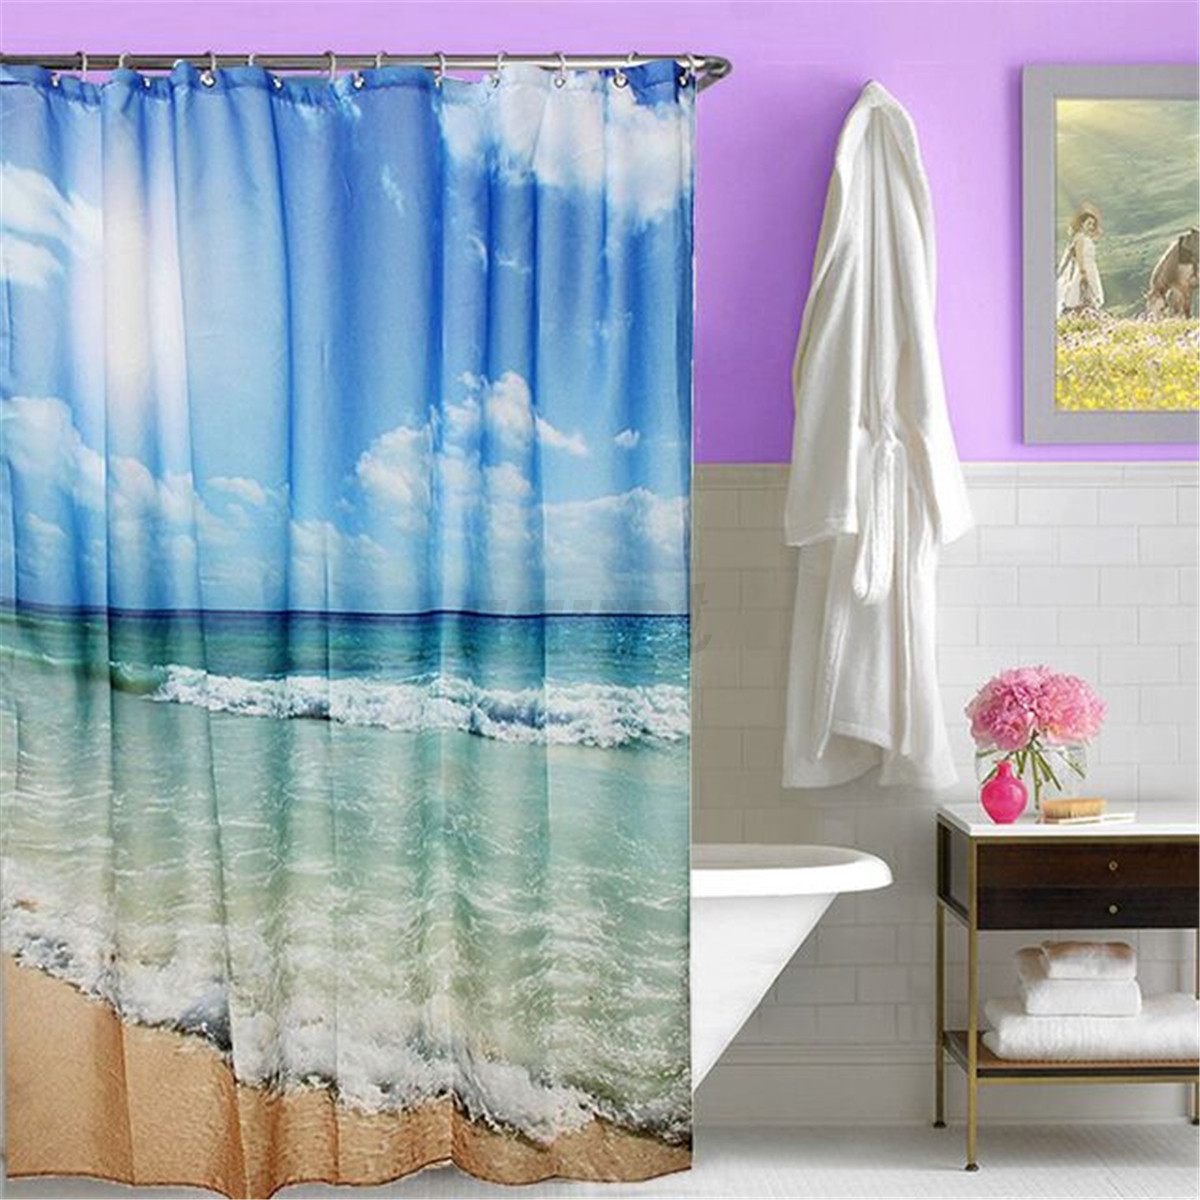 Shower Bathroom Sets: Various Shower Curtain Waterproof Polyester Fabric